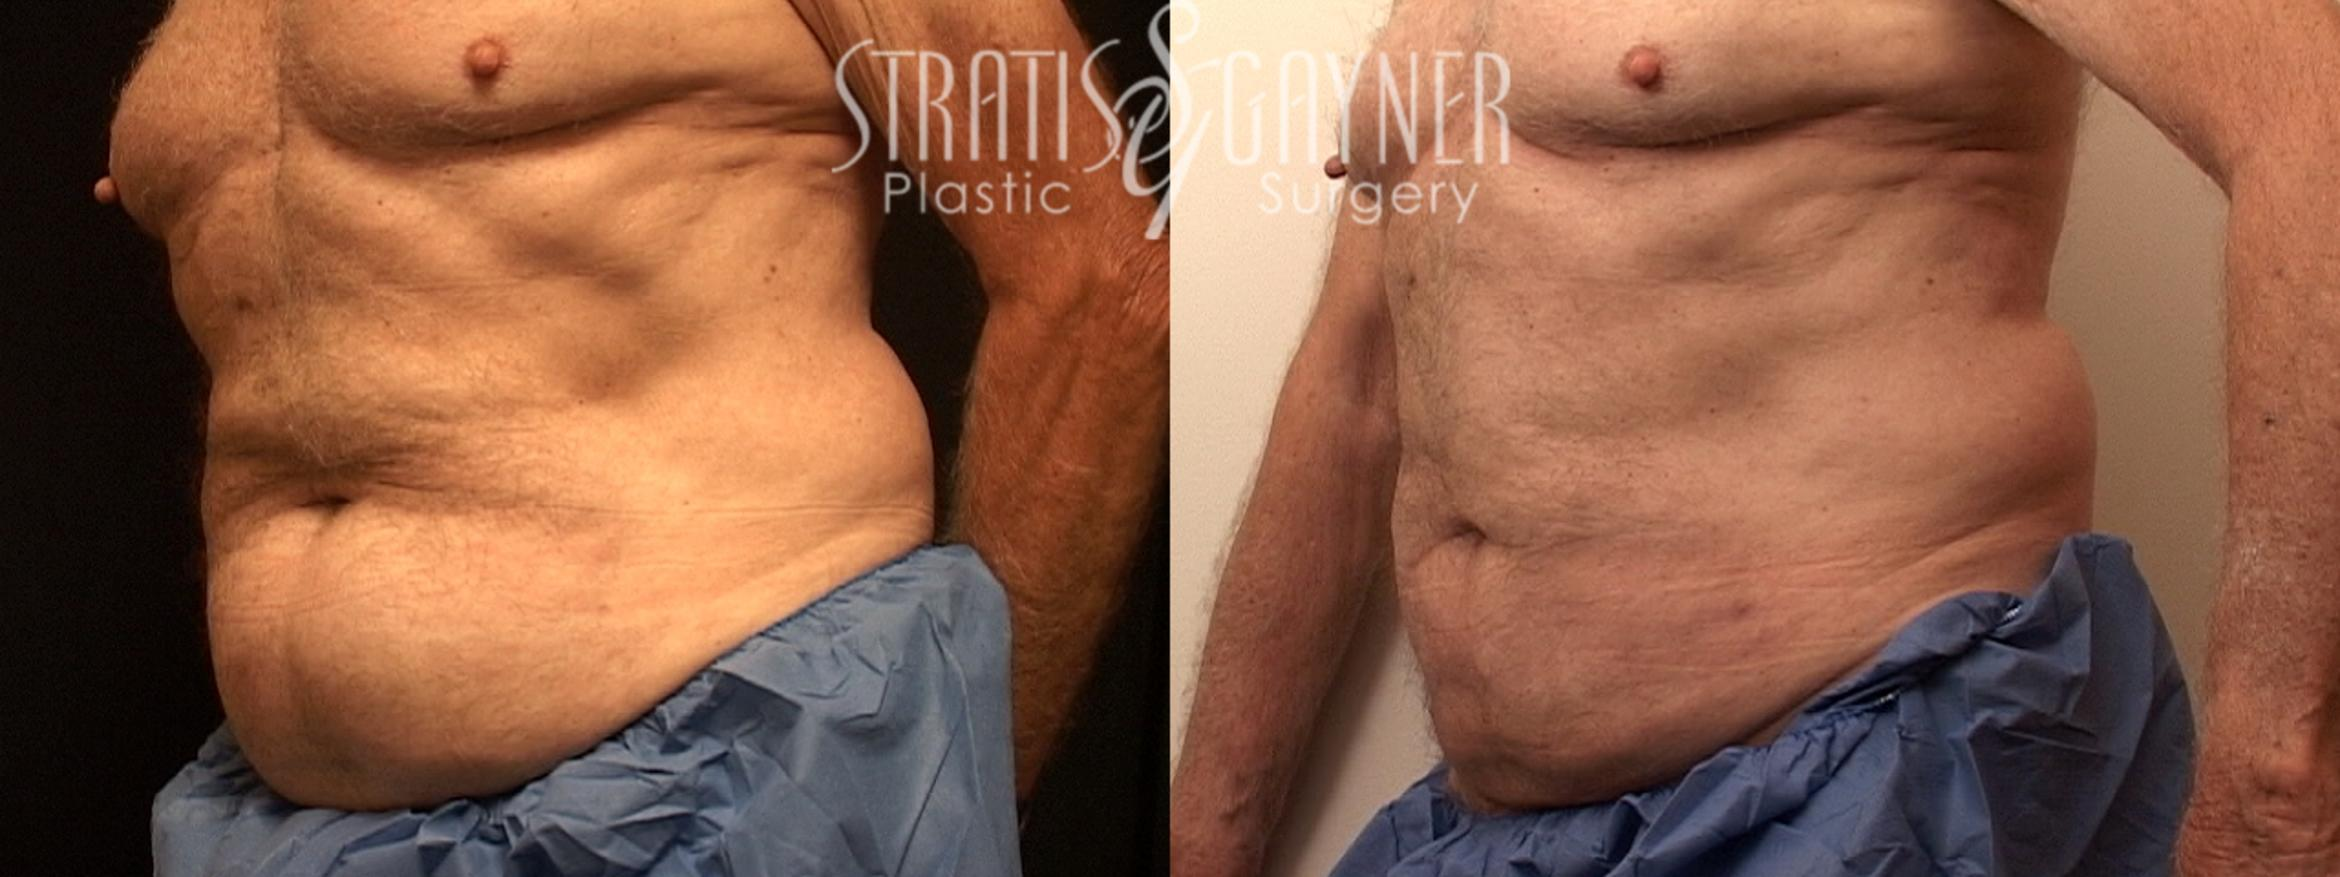 Liposuction Case 127 Before & After View #2 | Harrisburg, PA | Stratis Gayner Plastic Surgery